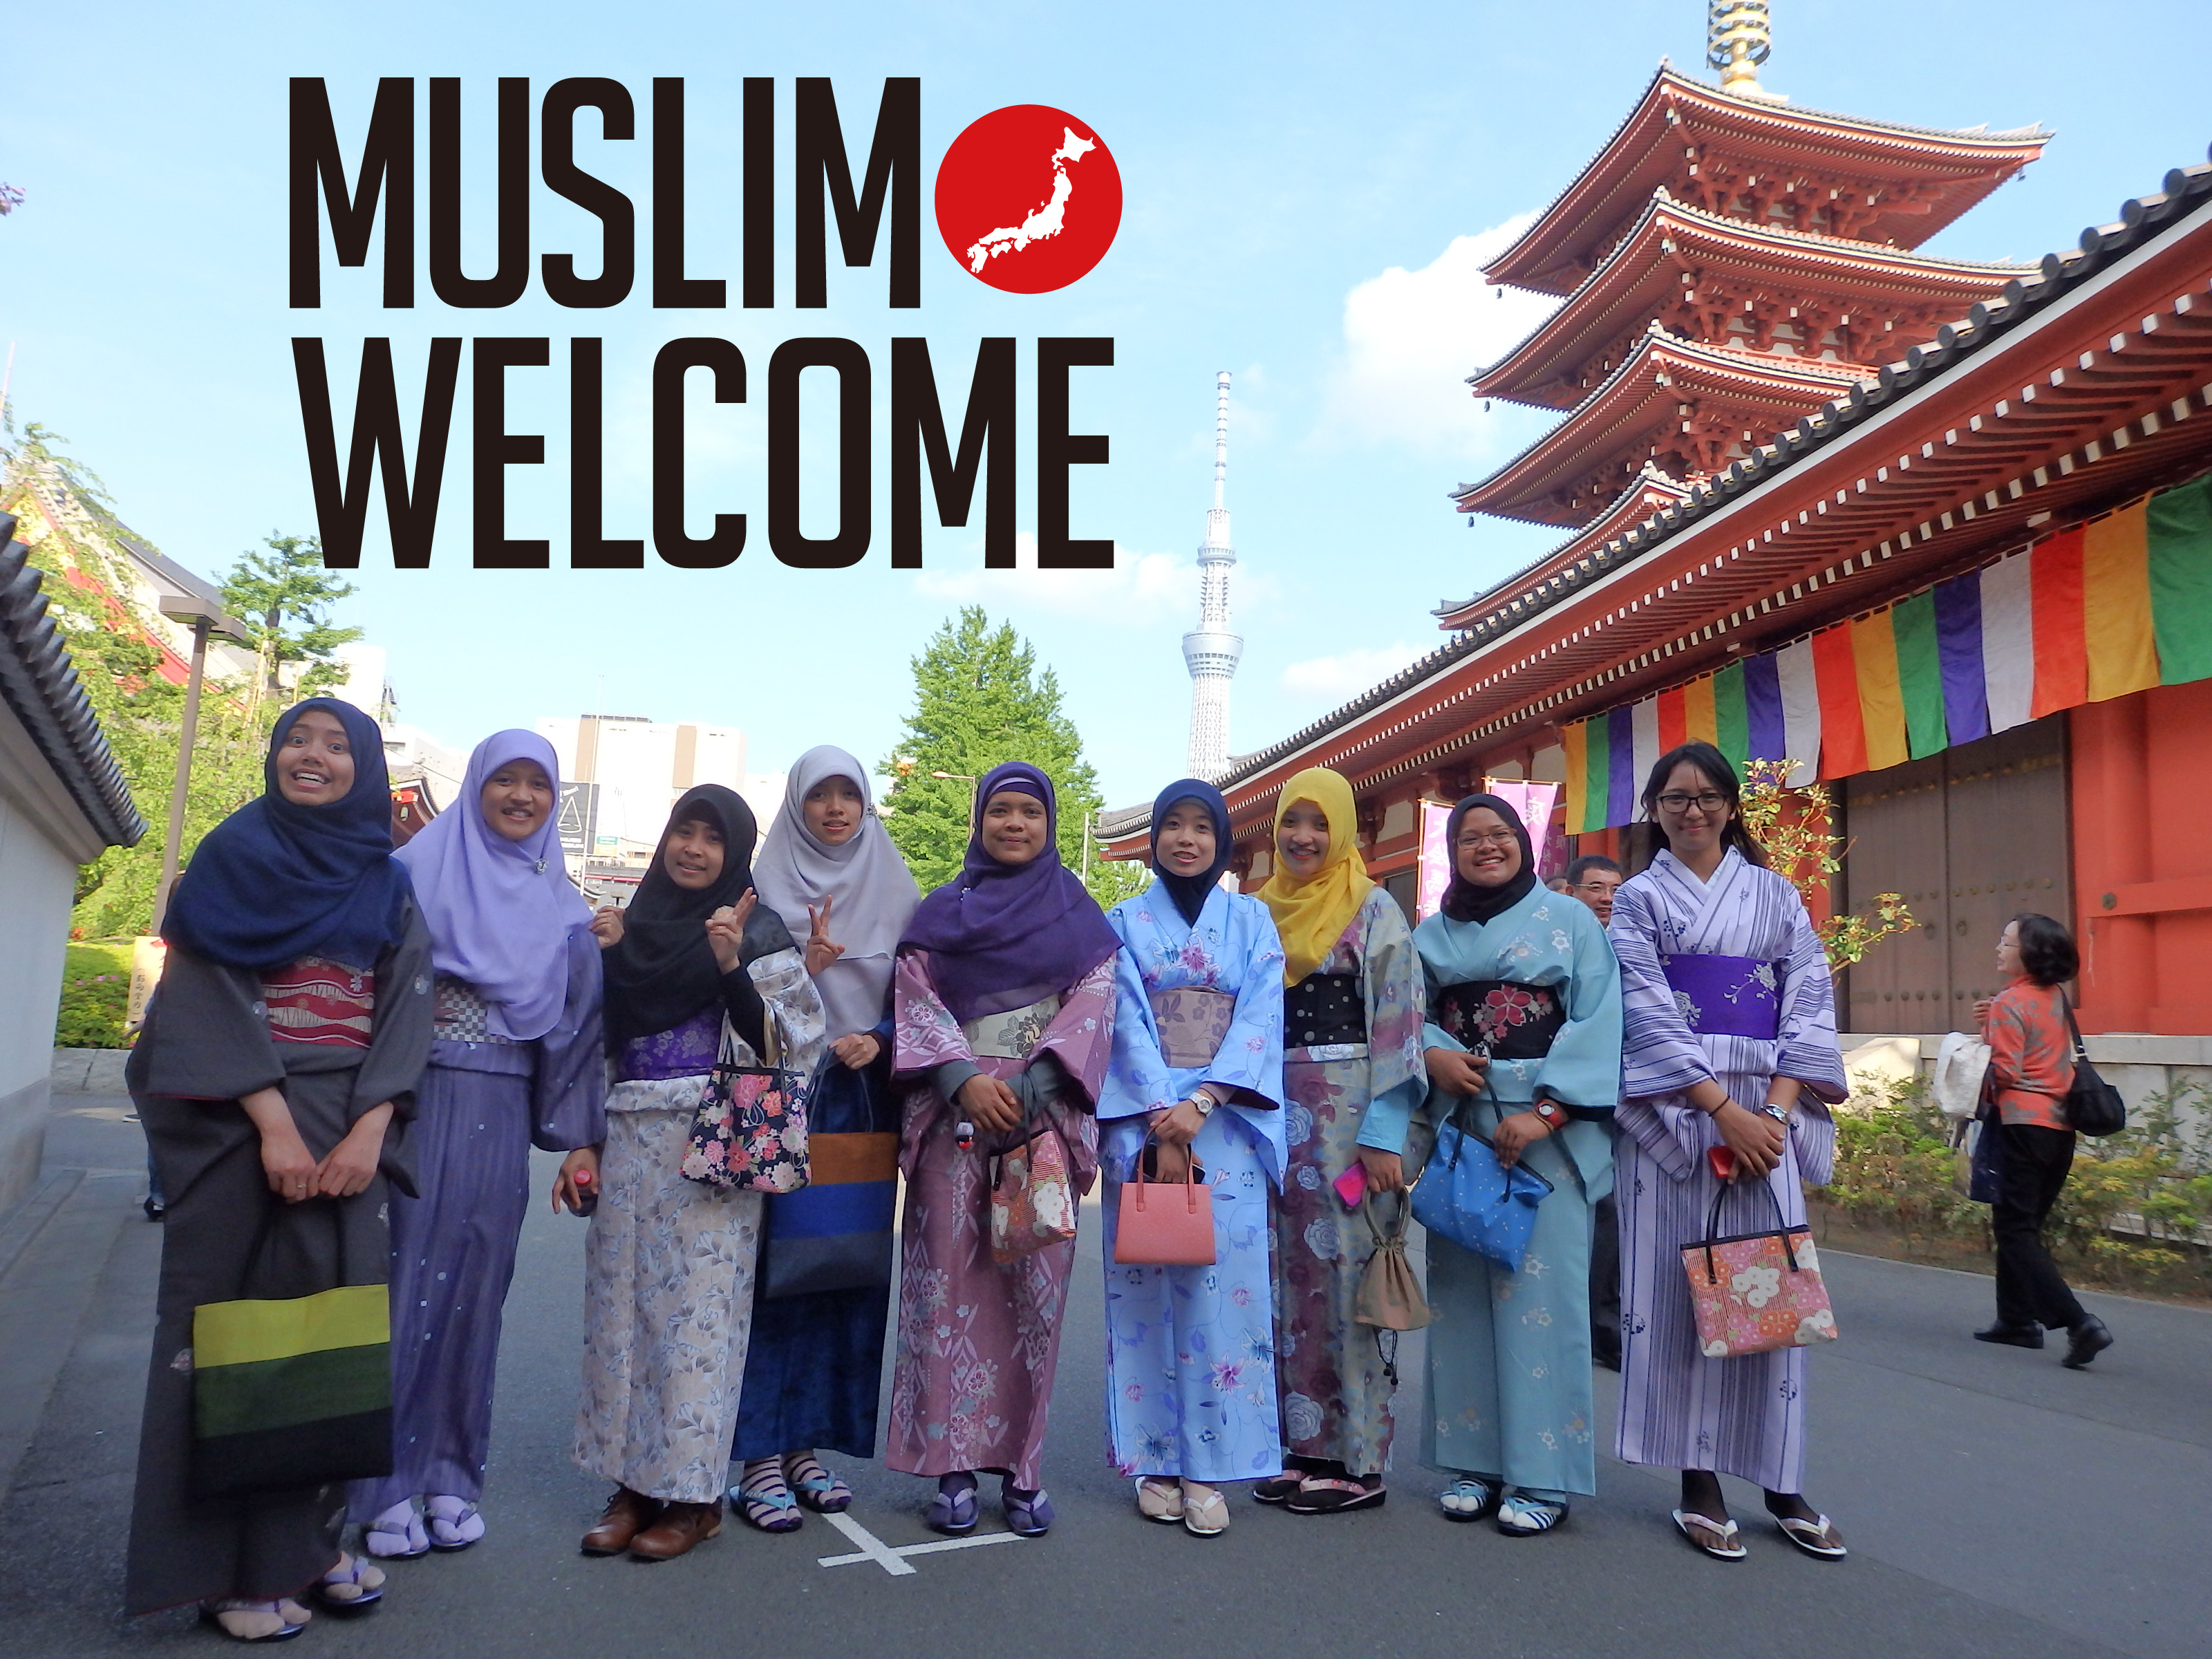 welcome muslim personals Welcome to our russian dating website hundreds of single russian women join our site every week you could try the advanced search facility in our site and find russian brides who perfectly match your requirements.